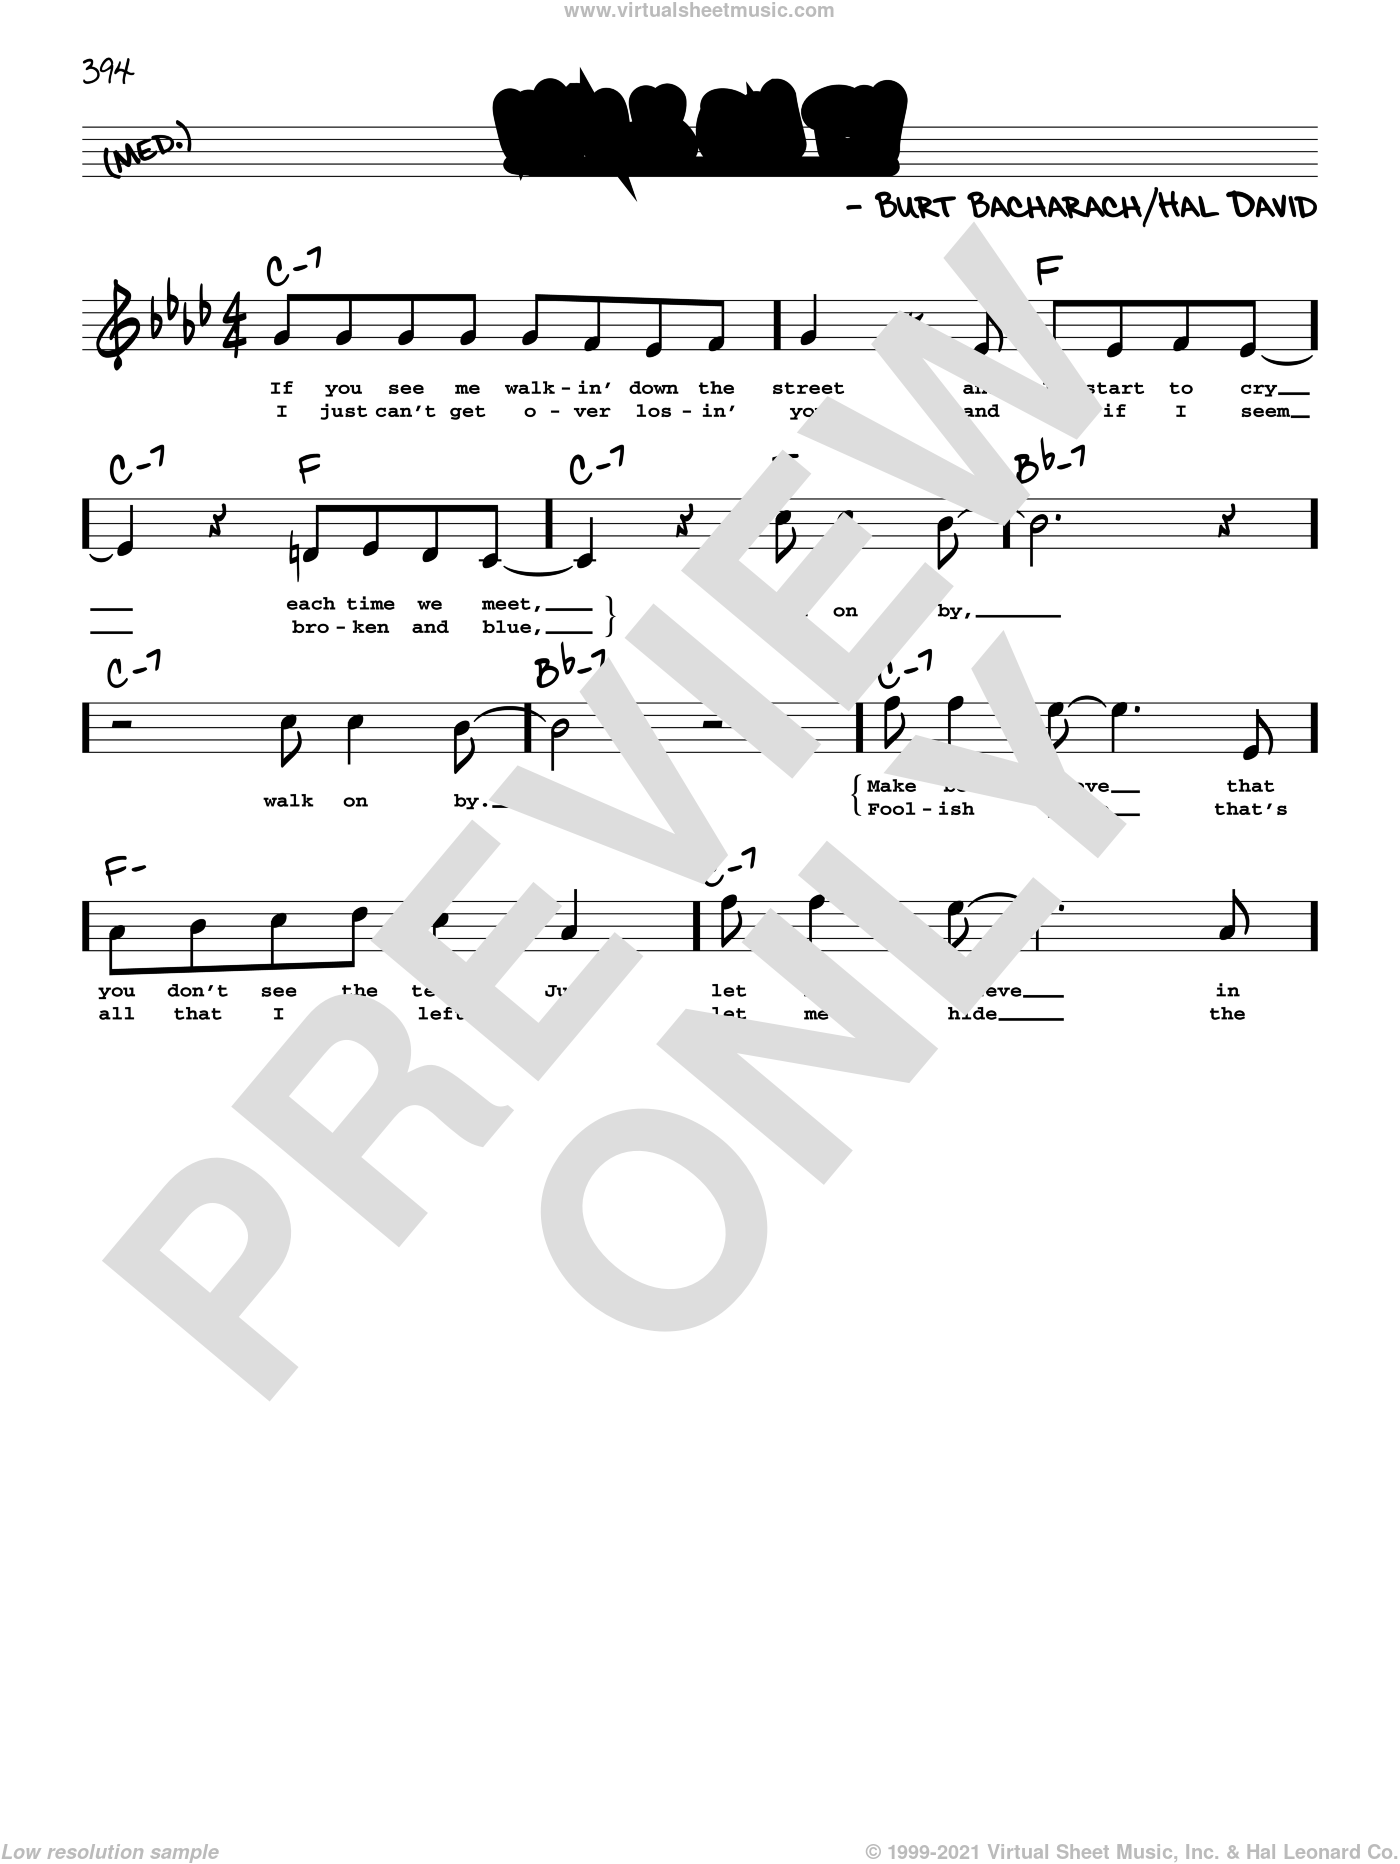 Walk On By (High Voice) sheet music for voice and other instruments (high voice) by Dionne Warwick, Burt Bacharach and Hal David, intermediate skill level